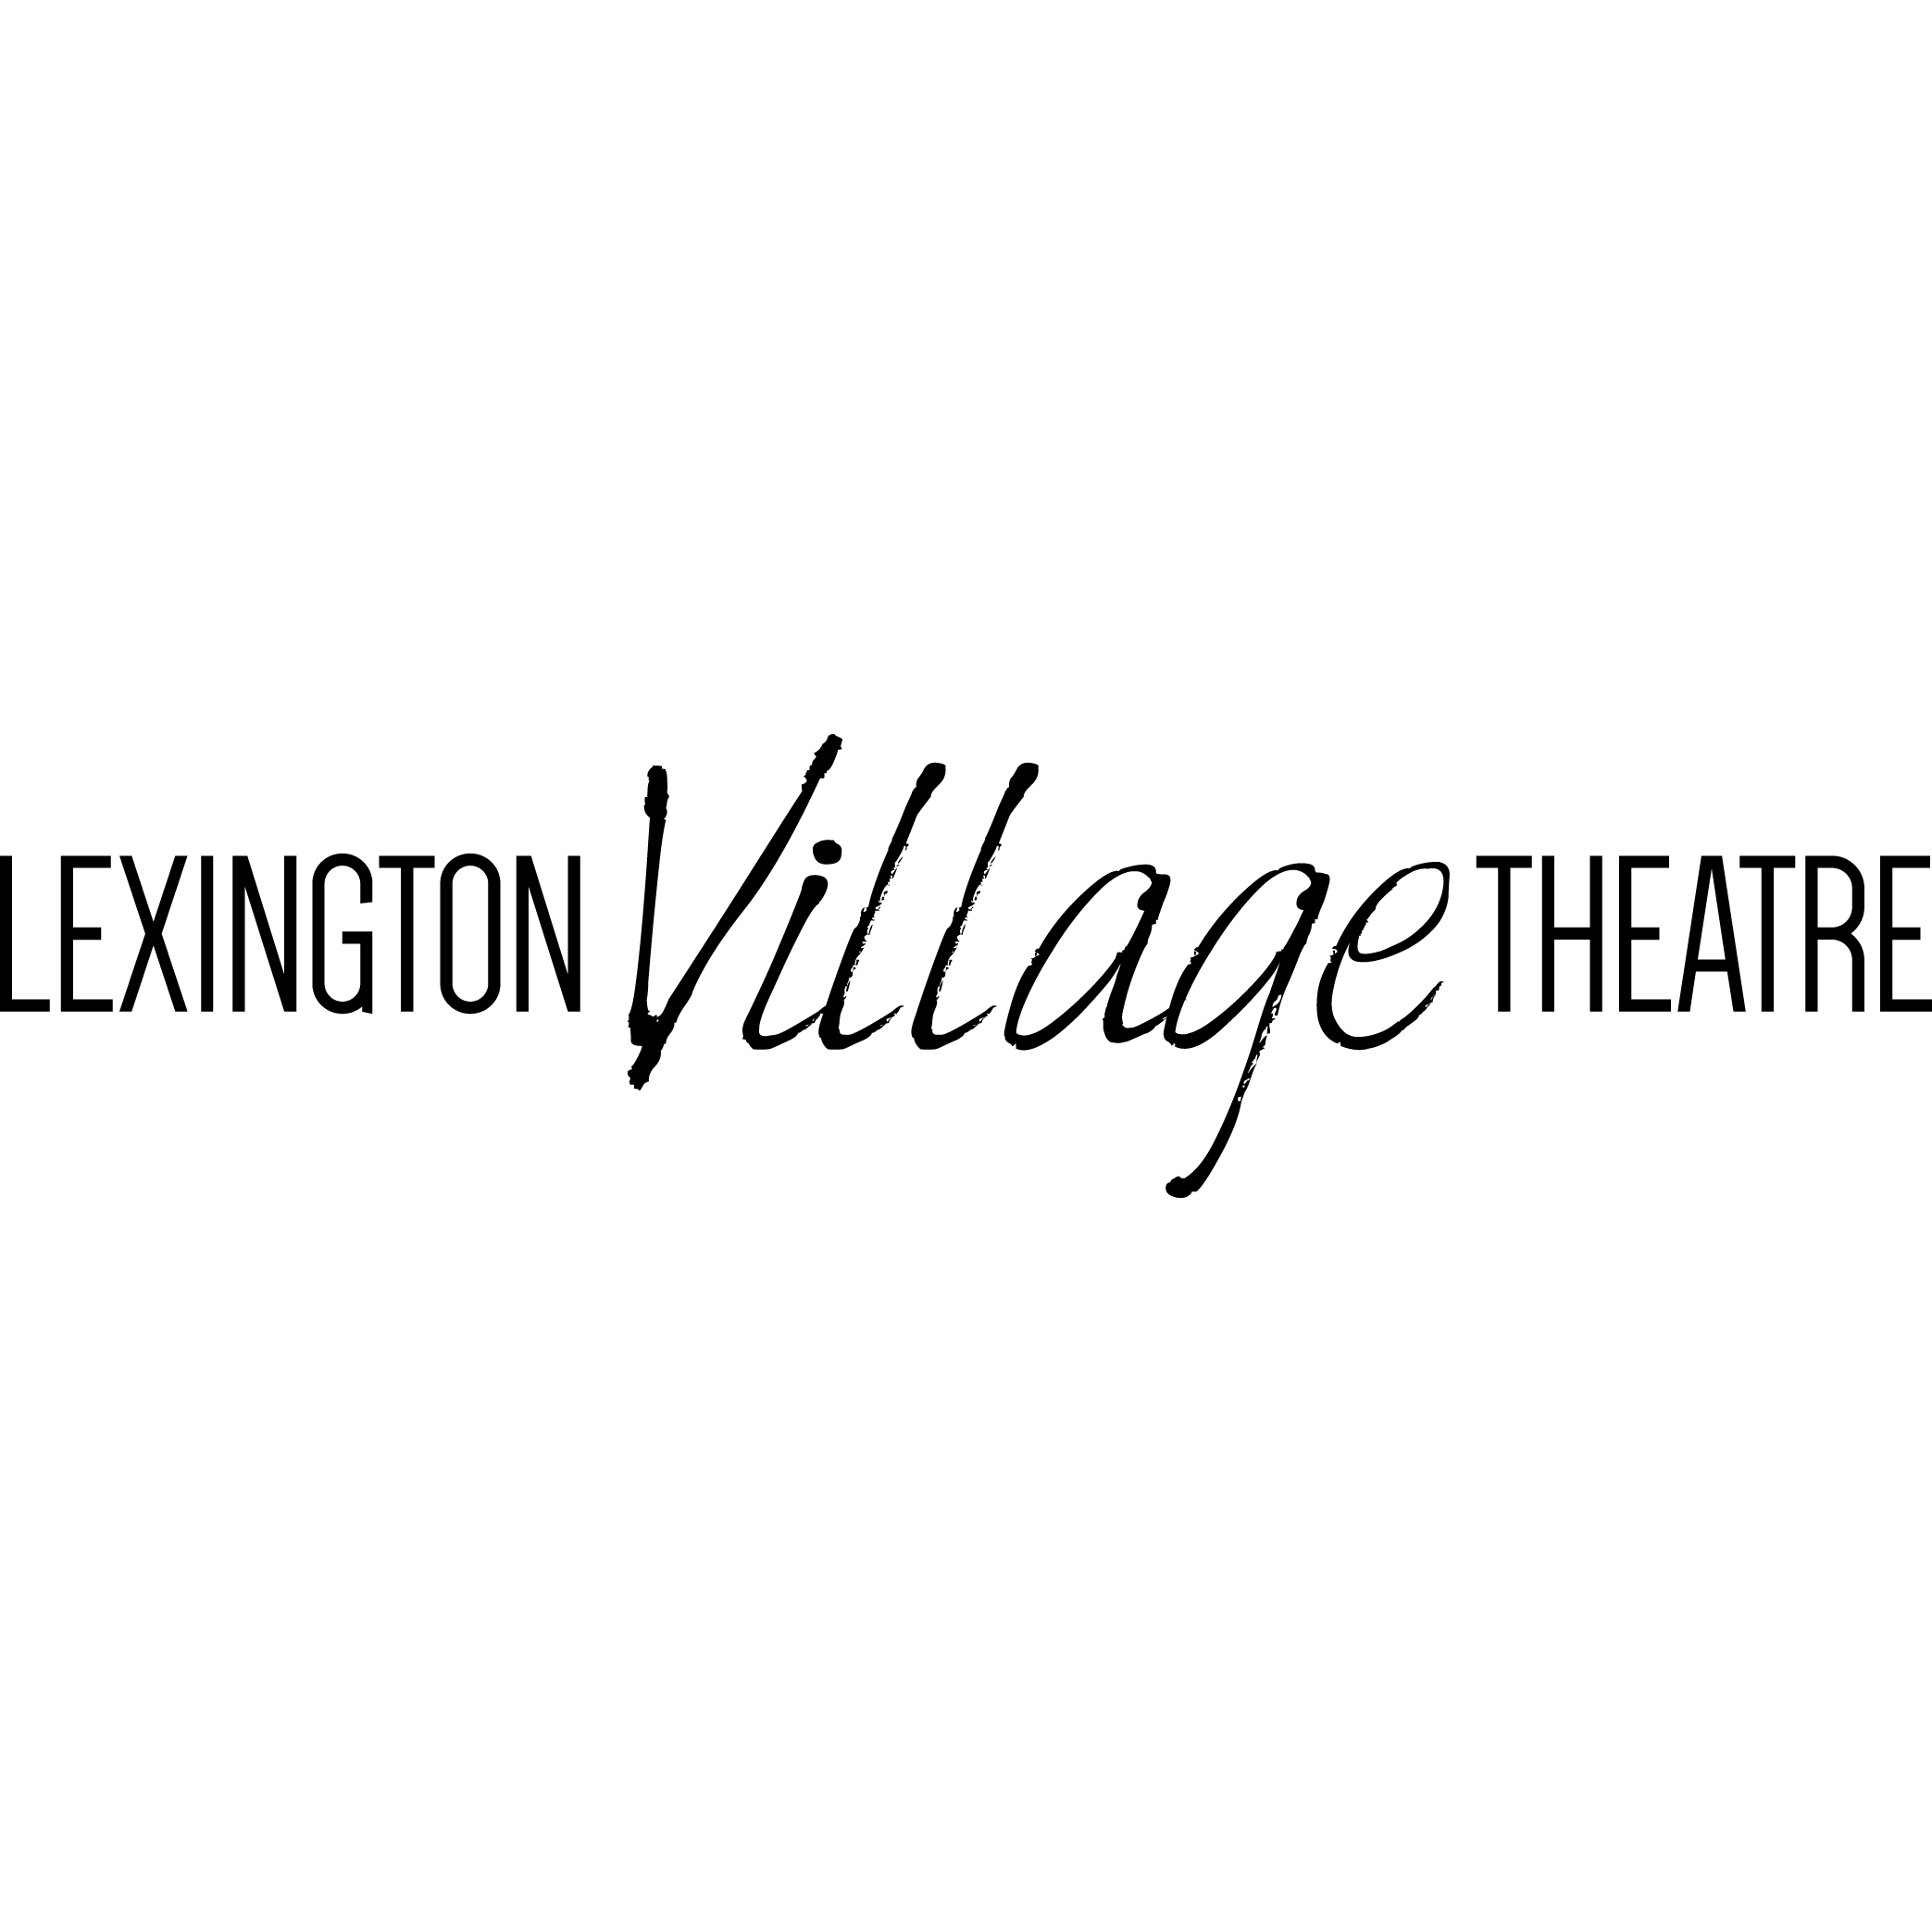 Lexington Village Theatre image 0